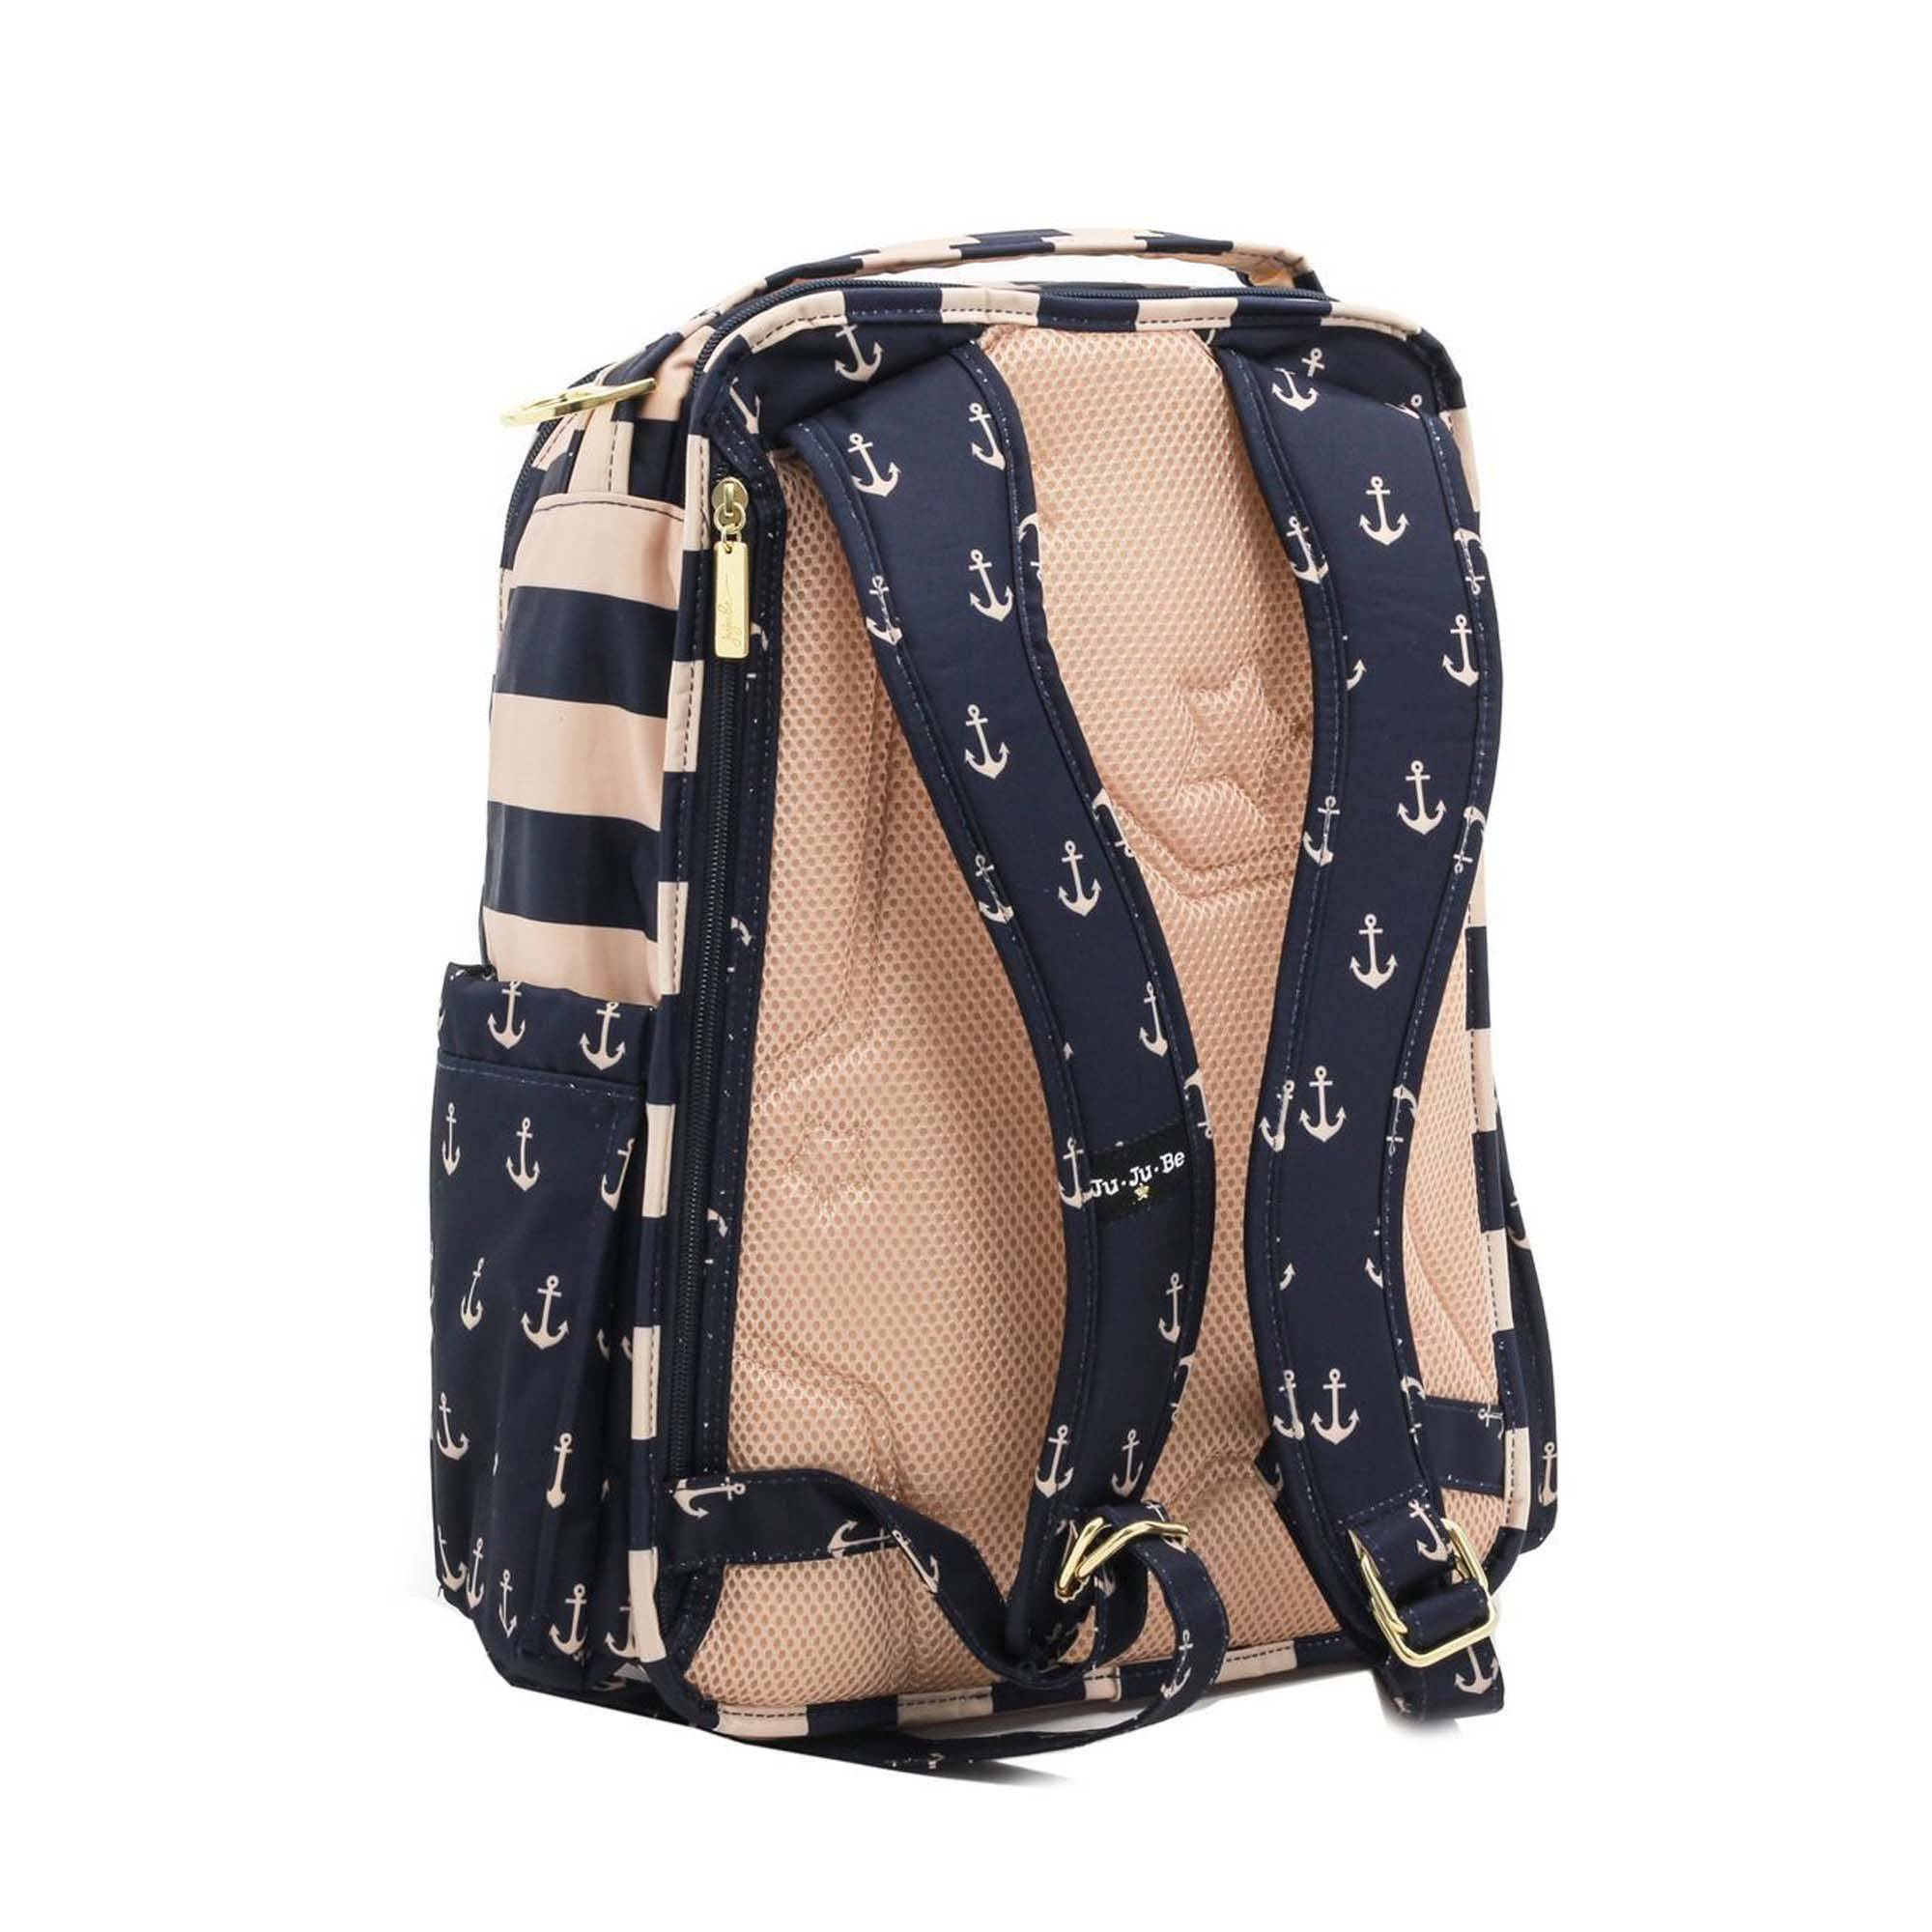 Ju Be Legacy Right Backpack Diaper Bag View 2